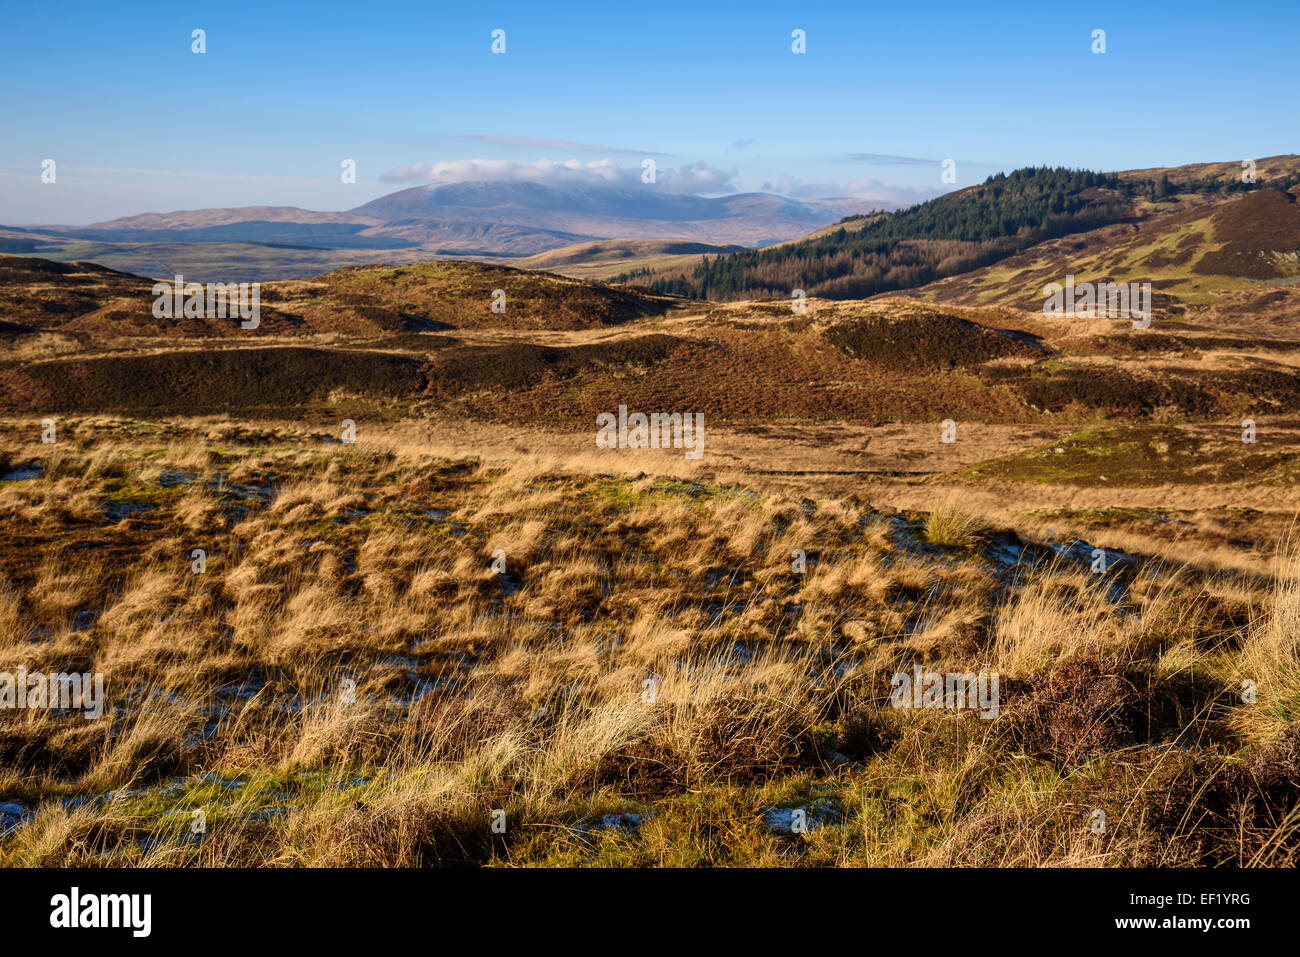 View looking towards Cairnsmore of Fleet from Fell of Laghead, Gatehouse of Fleet, Dumfries & Galloway, Scotland - Stock Image